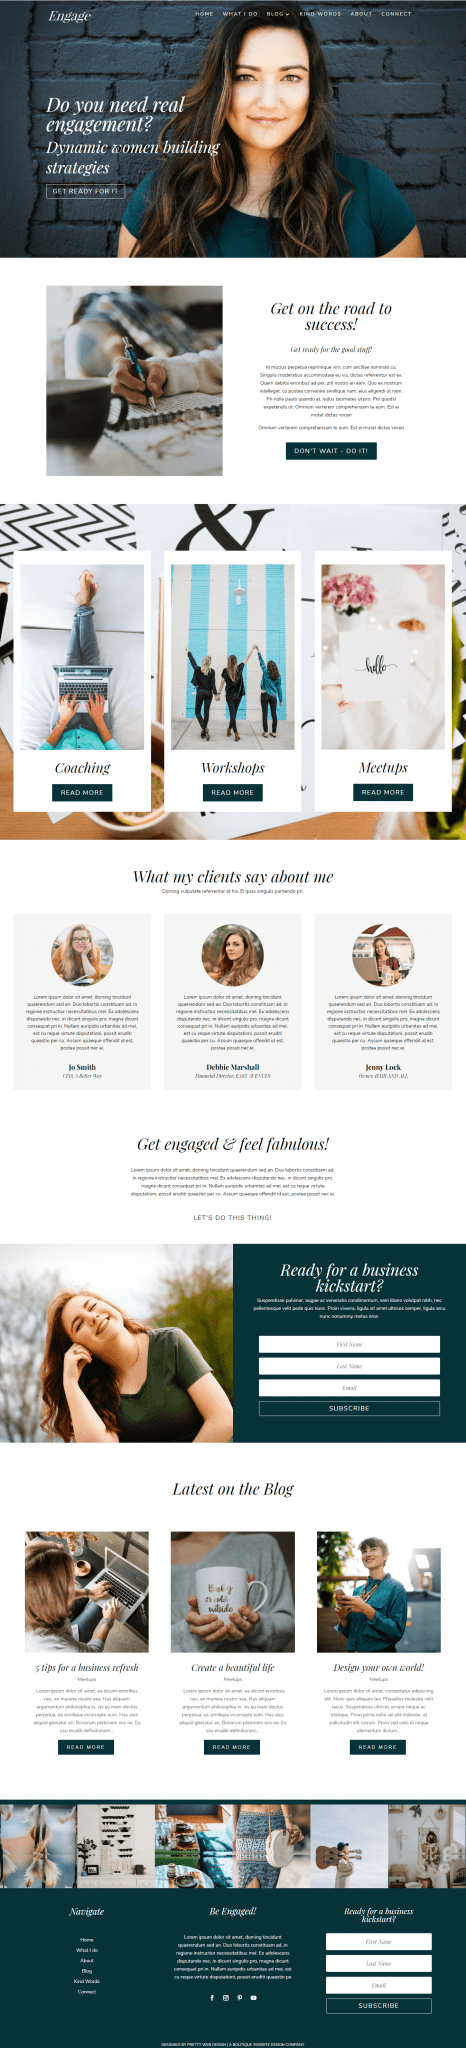 Engage Divi Child Theme Virtual Assistants & Social Media Manager Divi Child Theme